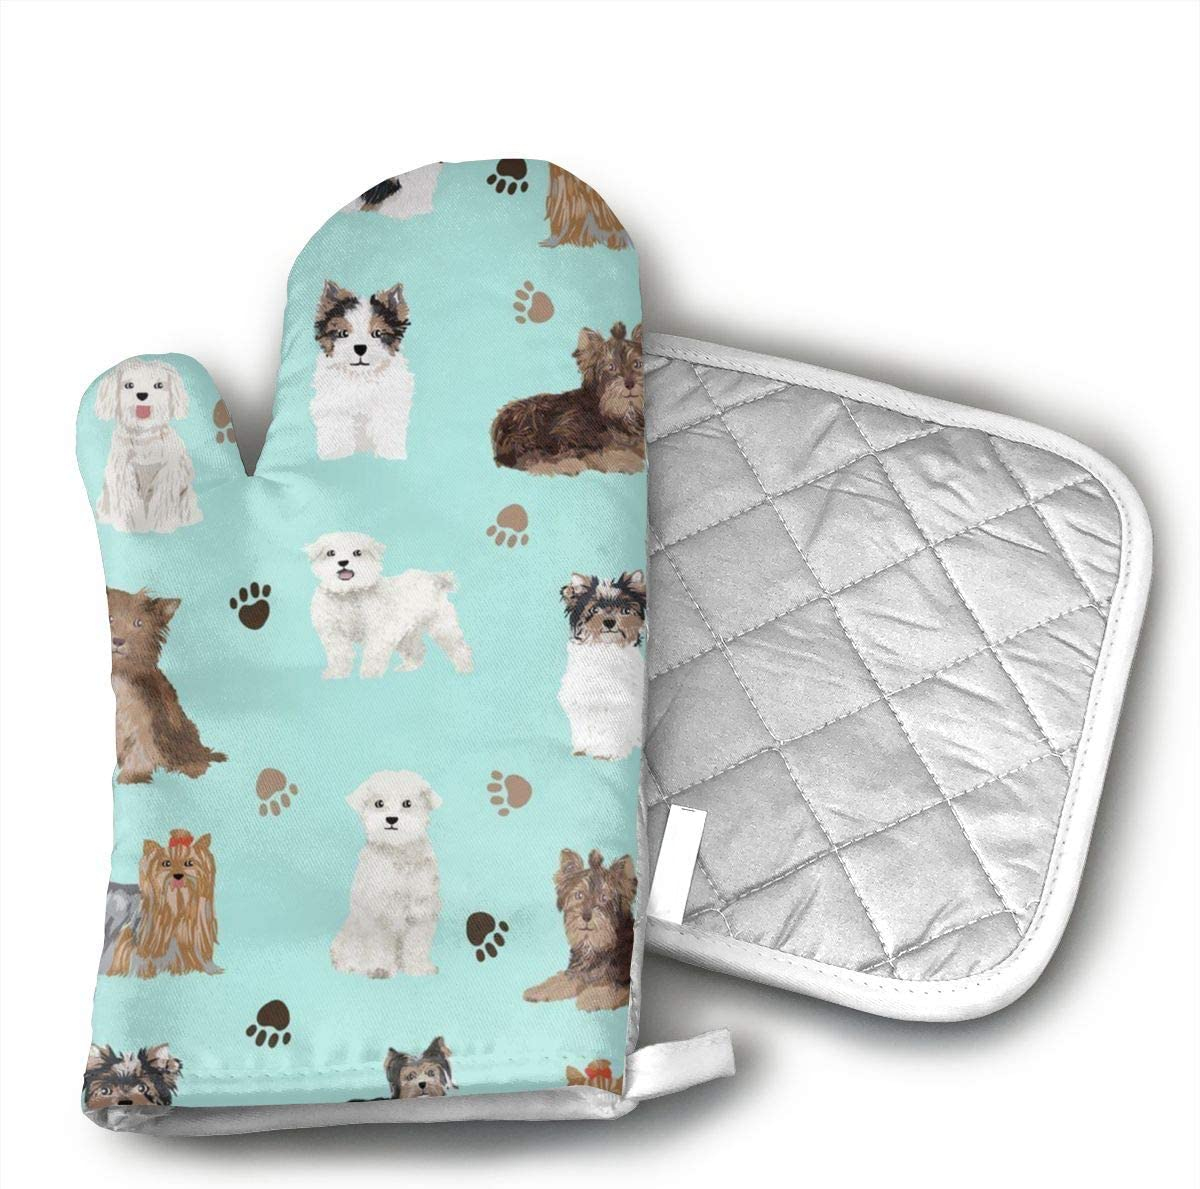 Sjiwqoj8 Yorkie Maltese Biewer Terriers Dogs Kitchen Oven Mitts,Oven Mitts and Pot Holders,Heat Resistant with Quilted Cotton Lining,Cooking,Baking,Grilling,Barbecue